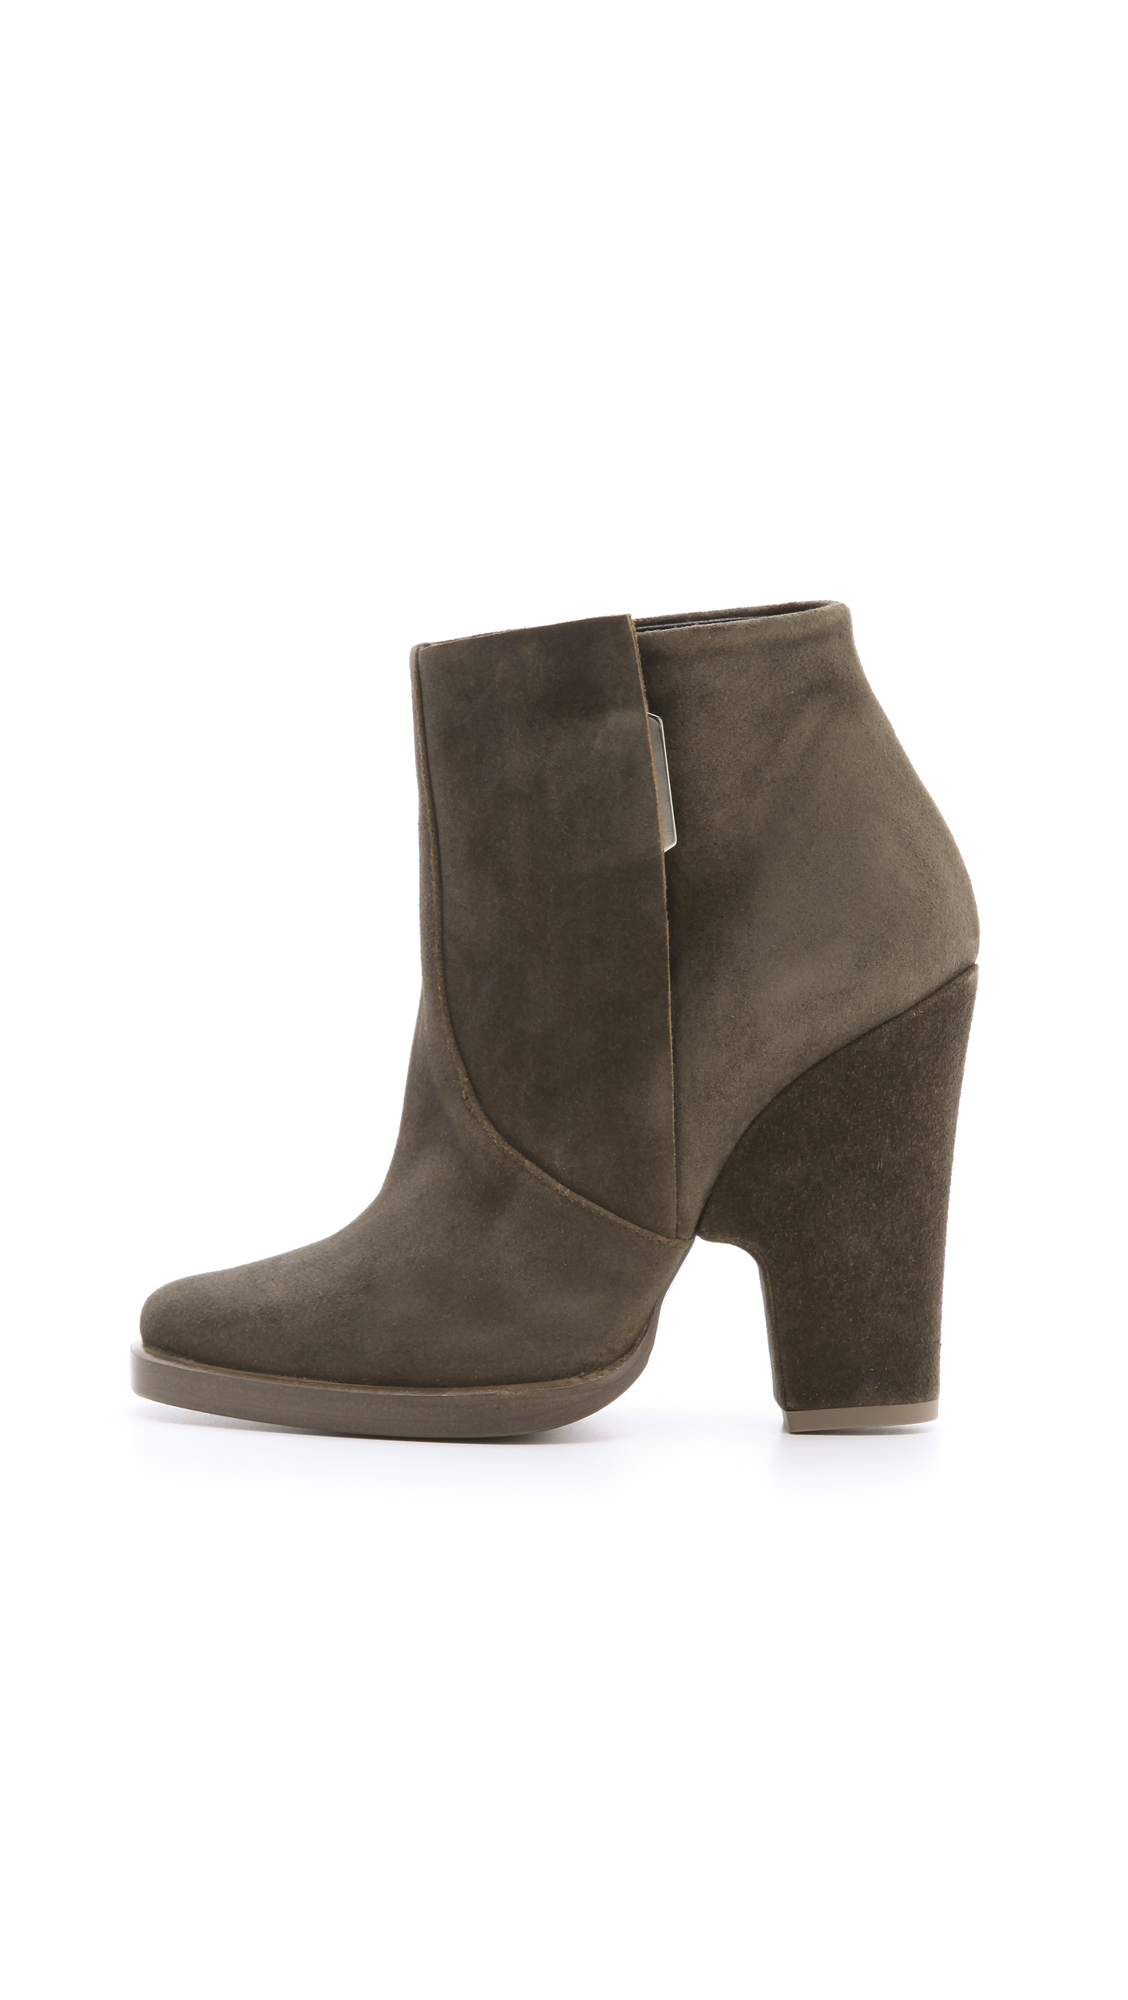 Theyskens' Theory Suede Ankle Boots wide range of good selling for sale visit knn7tA